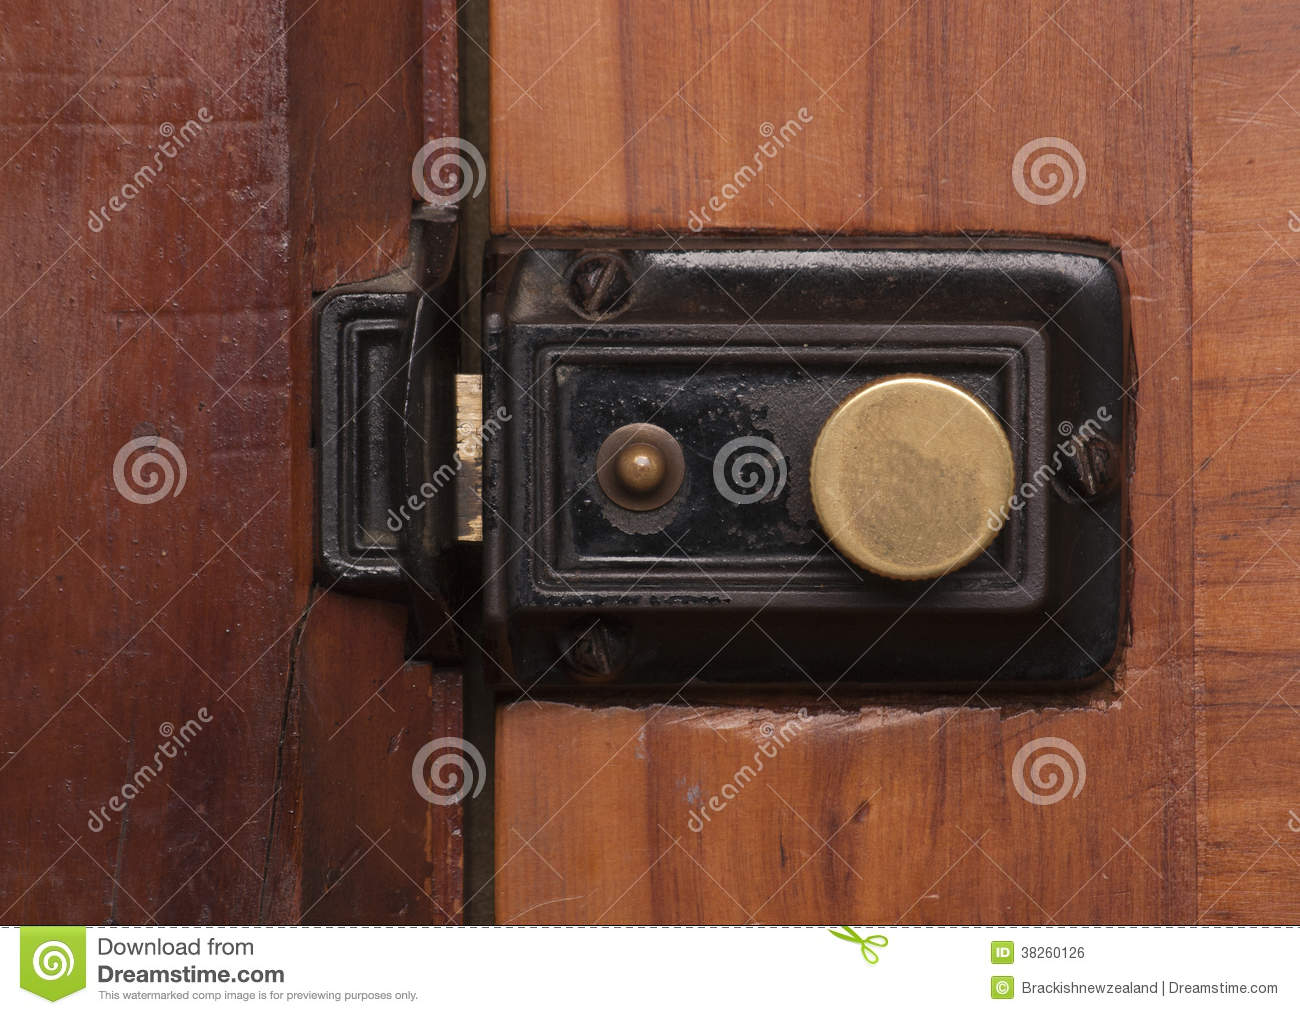 Royalty-Free Stock Photo. Download Vintage Door Bolt ... - Vintage Door Bolt And Lock Royalty Free Stock Image - Image: 38260126